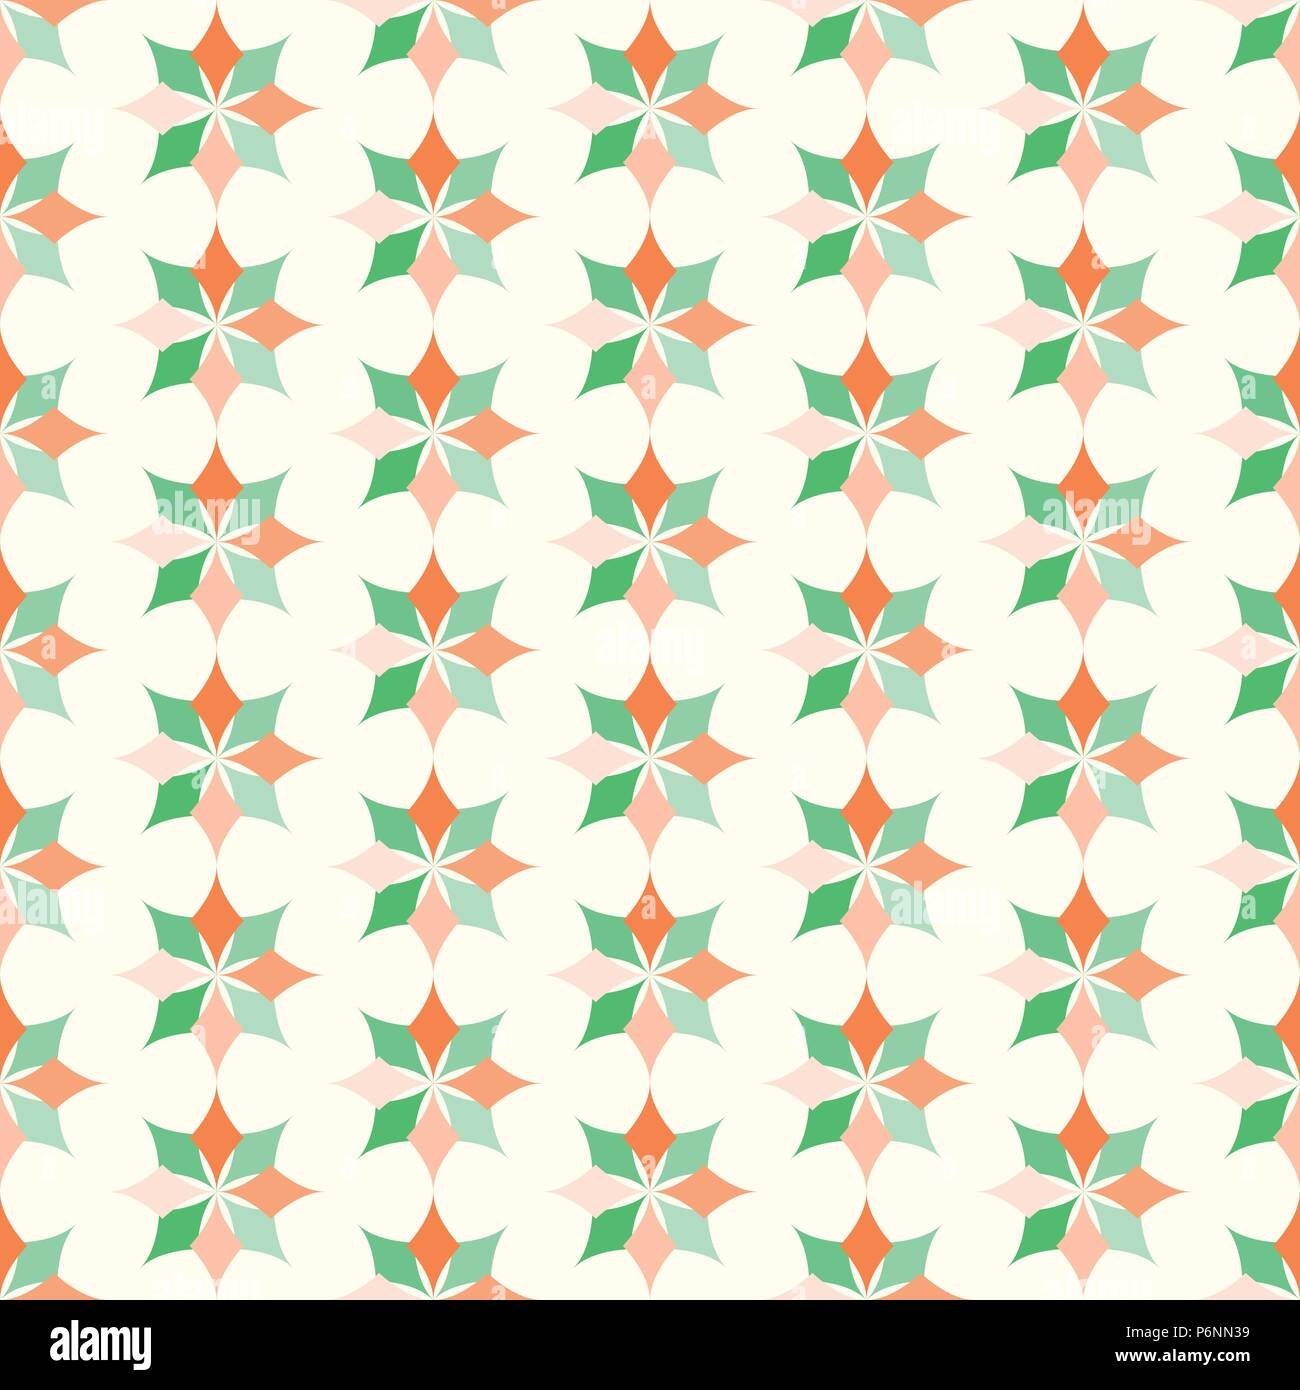 Orange and green modern classic bloom seamless pattern. Abstract blossom style for graphic and retro design. - Stock Vector